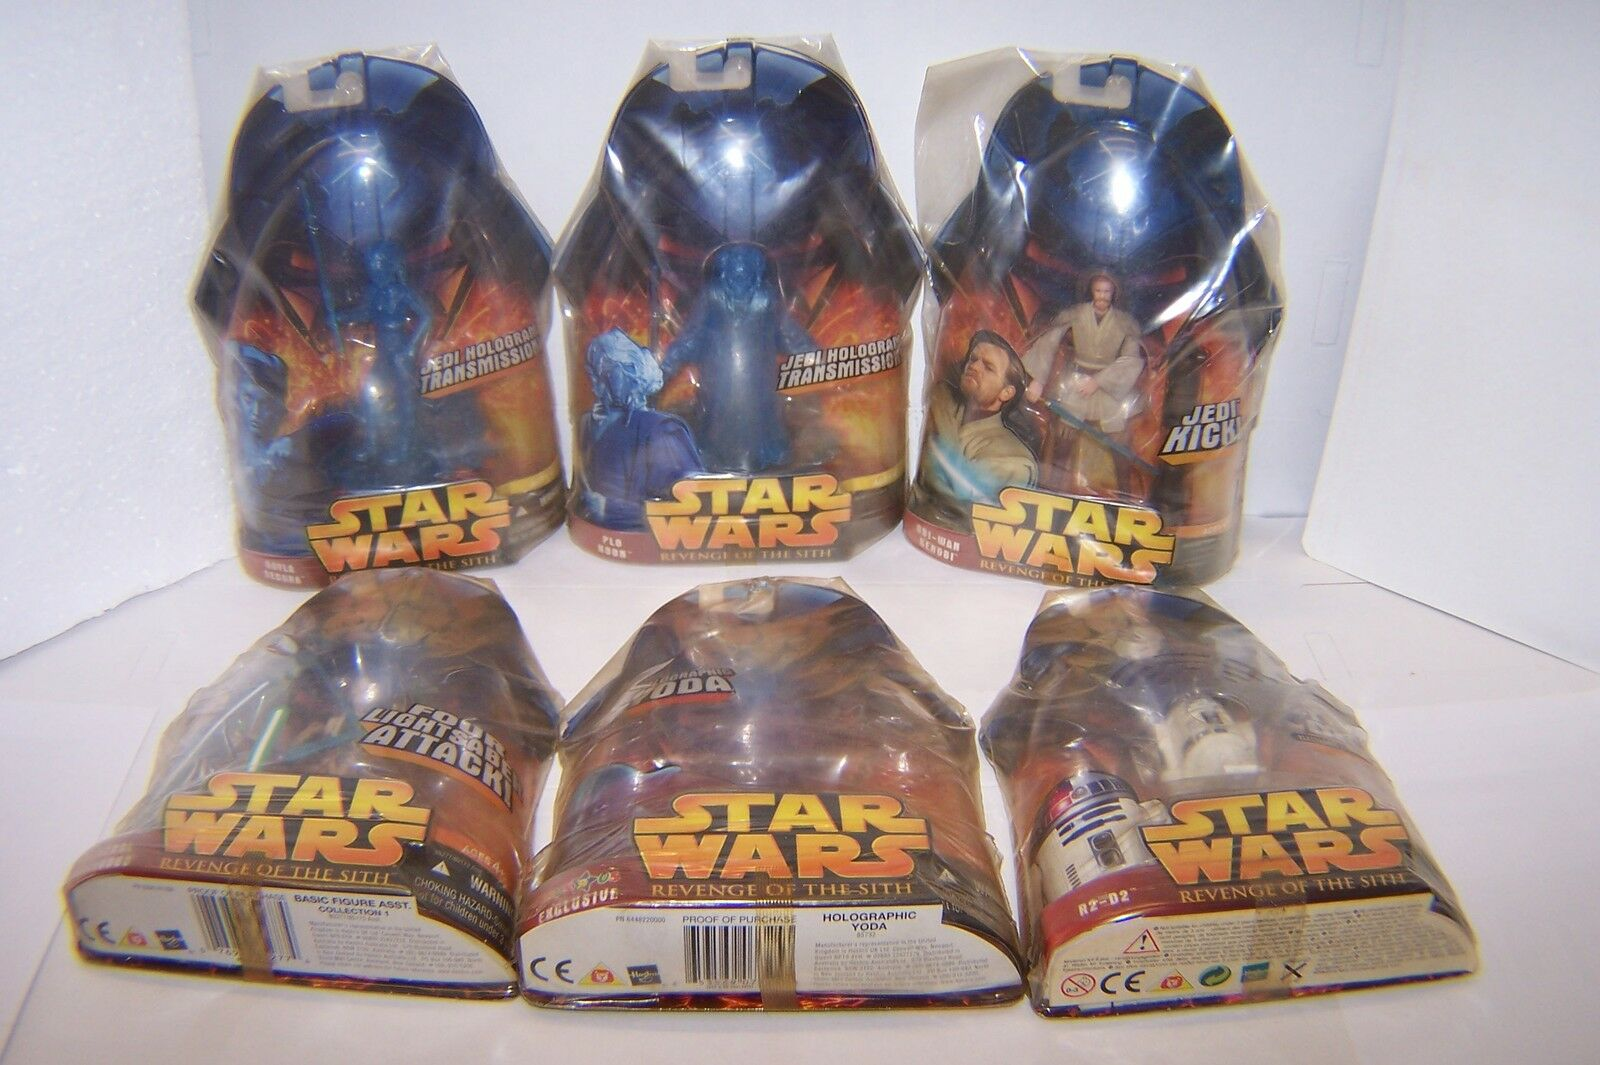 STAR WARS revenge of the sith - n  6 action figure - vedi elenco - vedi foto -